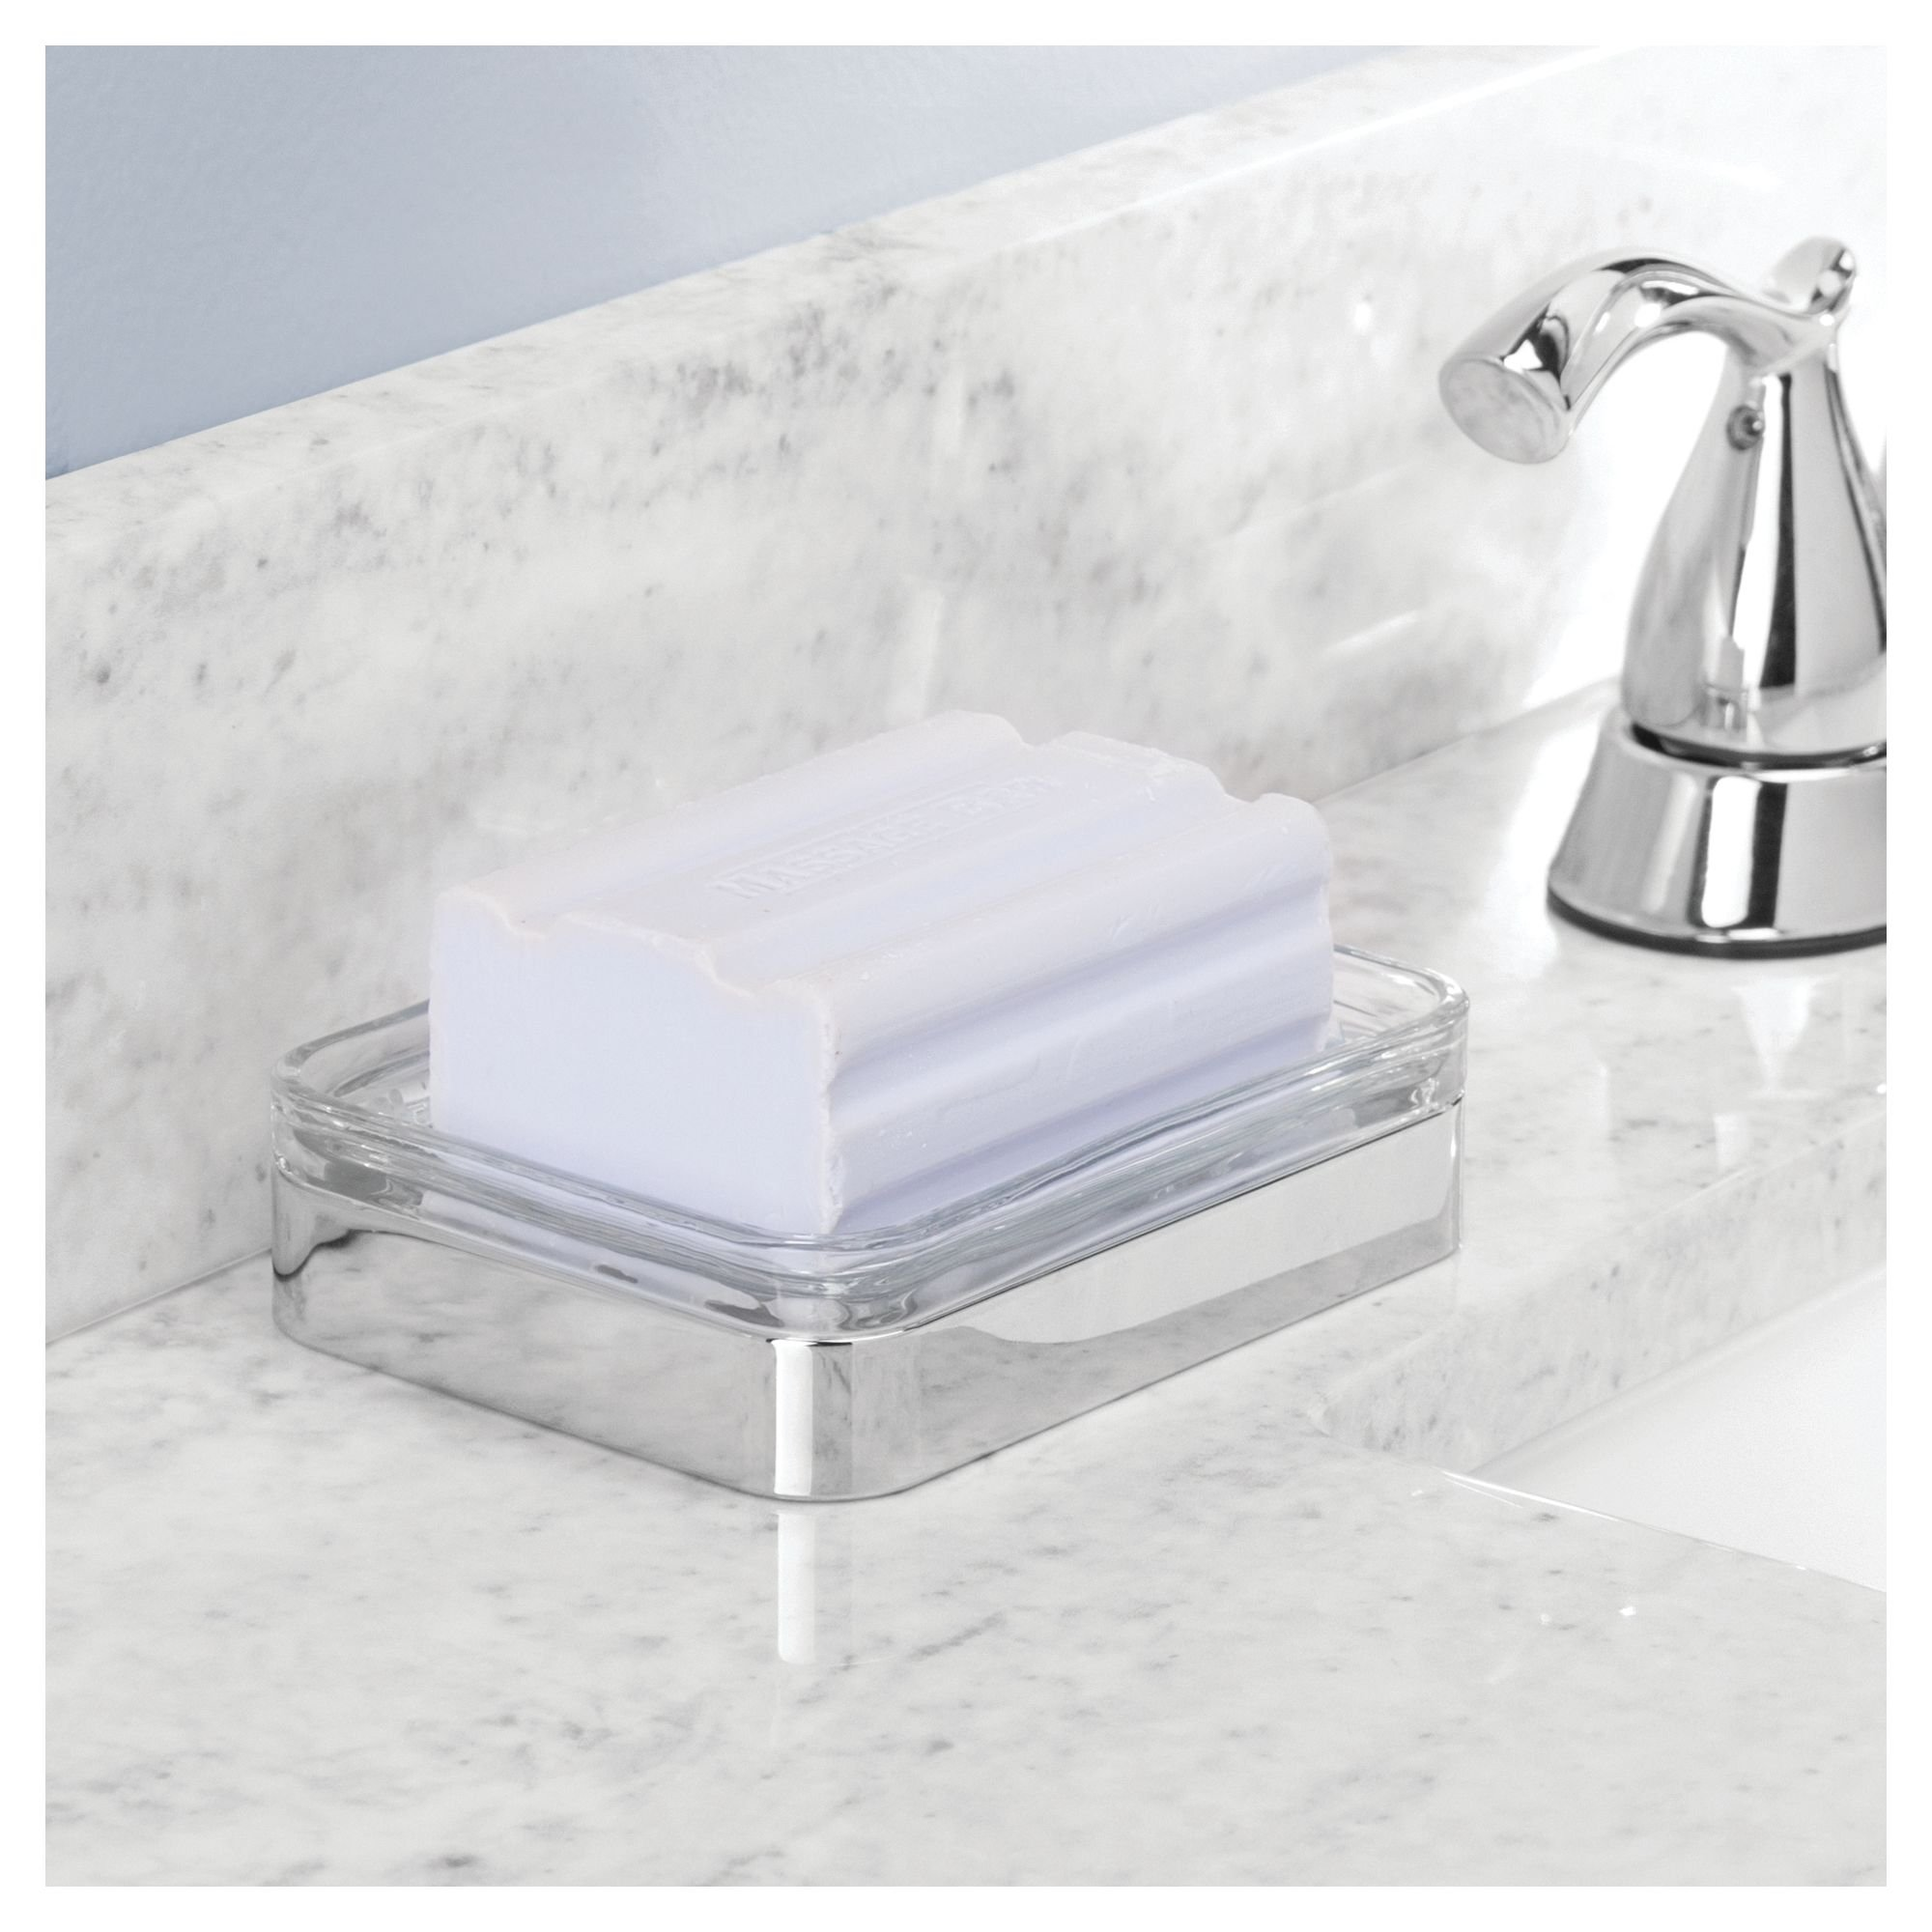 InterDesign Casilla Bar Soap Dish for Bathroom Countertop, Vanity, Kitchen Sink - Clear/Chrome (24231) by InterDesign (Image #3)